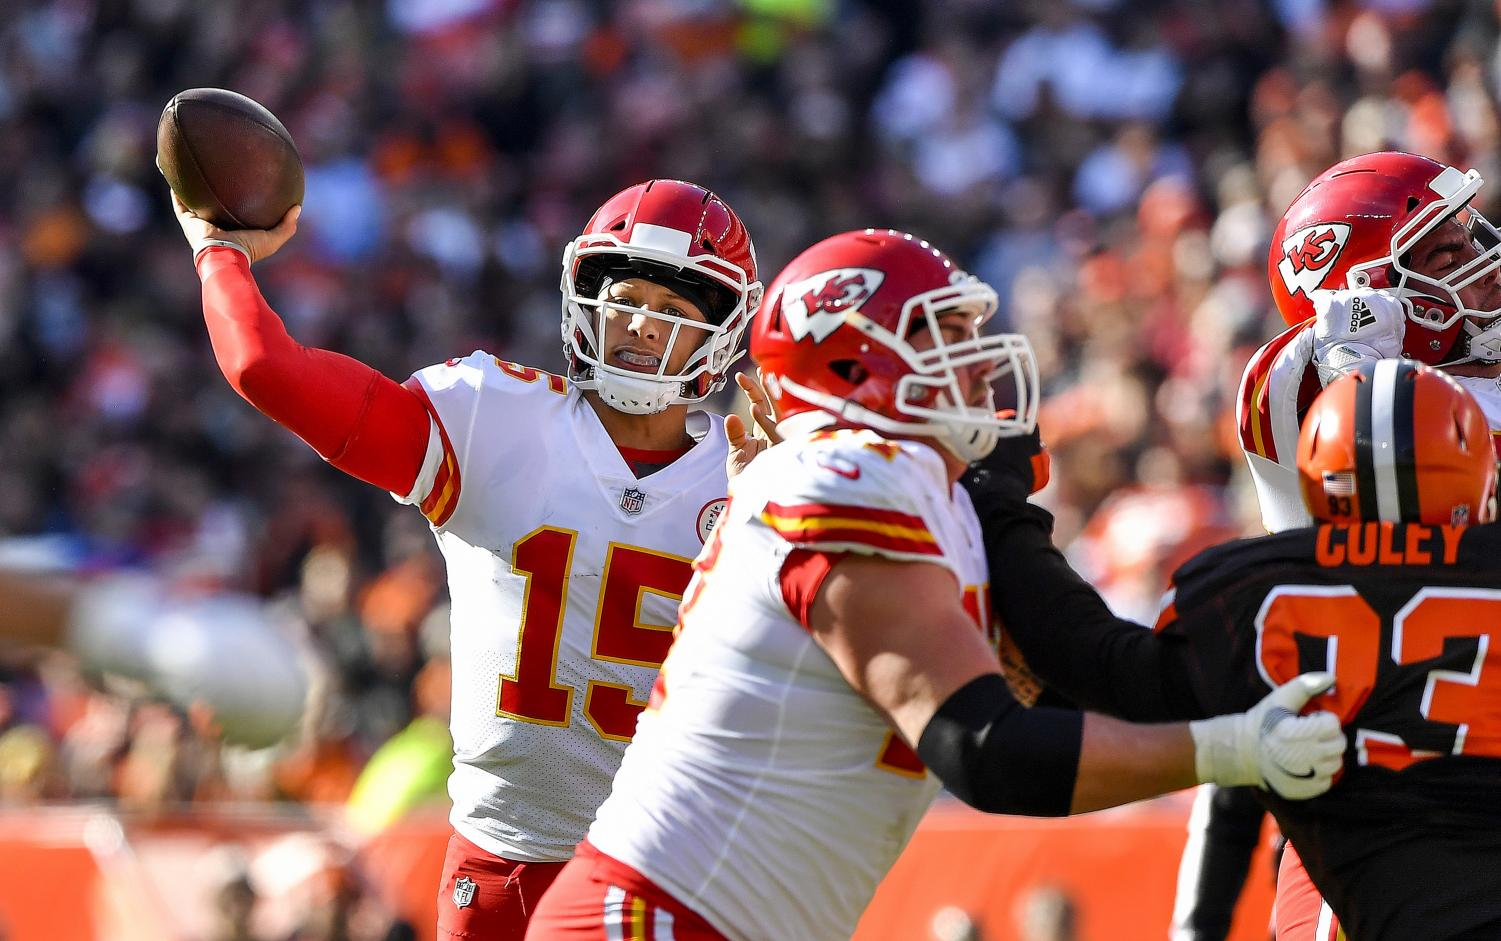 Kansas City Chiefs quarterback Patrick Mahomes throws a touchdown pass to tight end Travis Kelce in the second quarter against the Cleveland Browns on Sunday, Nov. 4, 2018 at FirstEnergy Stadium in Cleveland, Ohio. (John Sleezer/Kansas City Star/TNS)